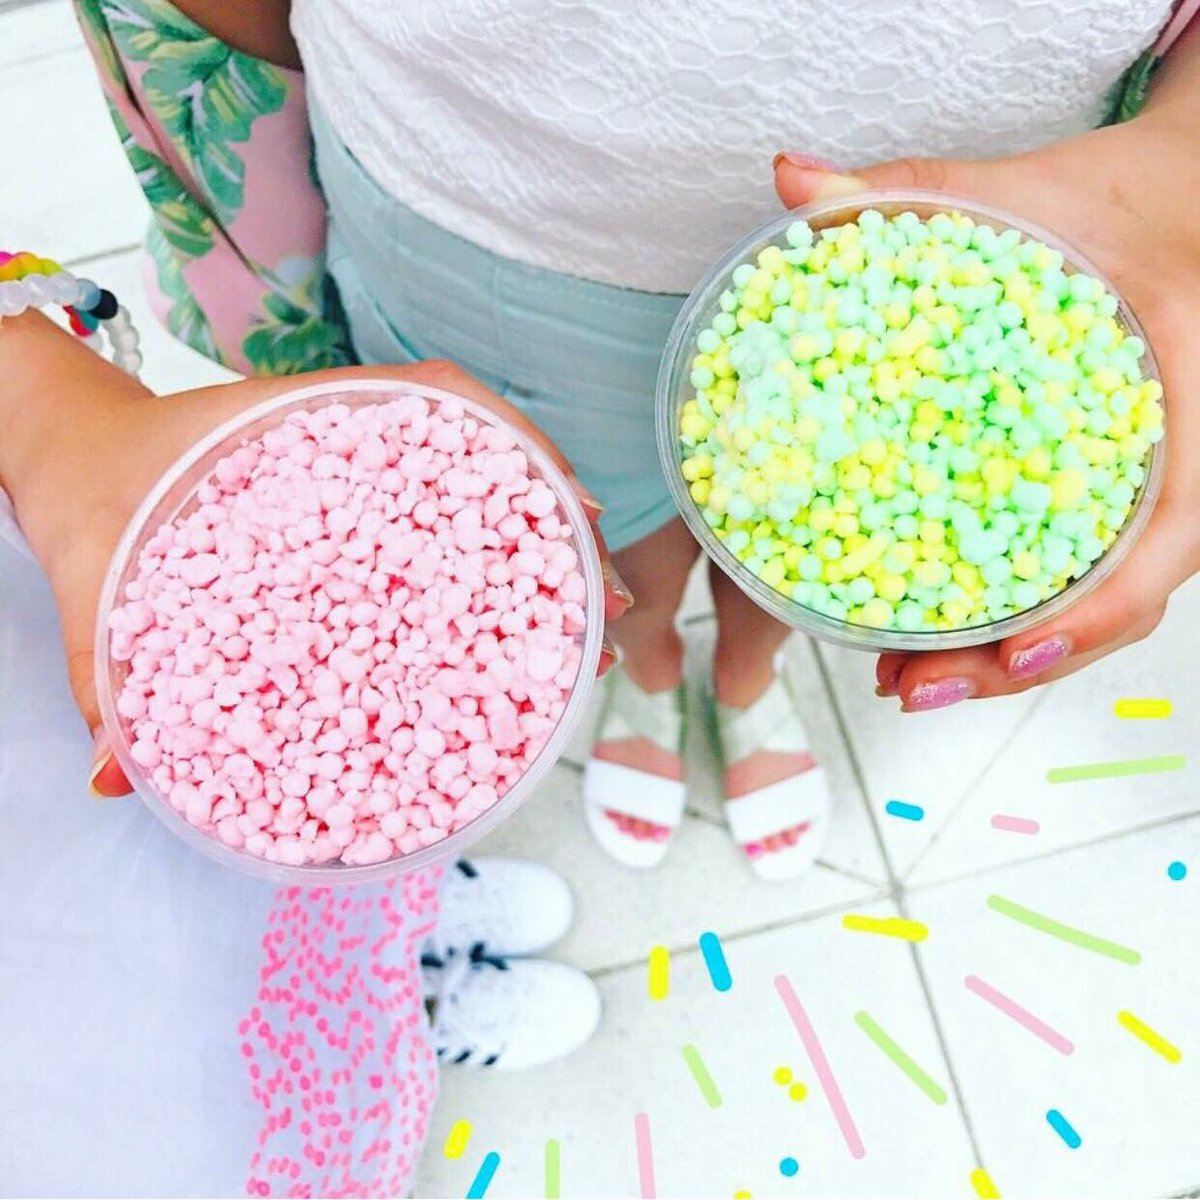 🍡🍡 Cheers to the weekend #Friyay #DippinDots https://t.co/JSwlczAj5u